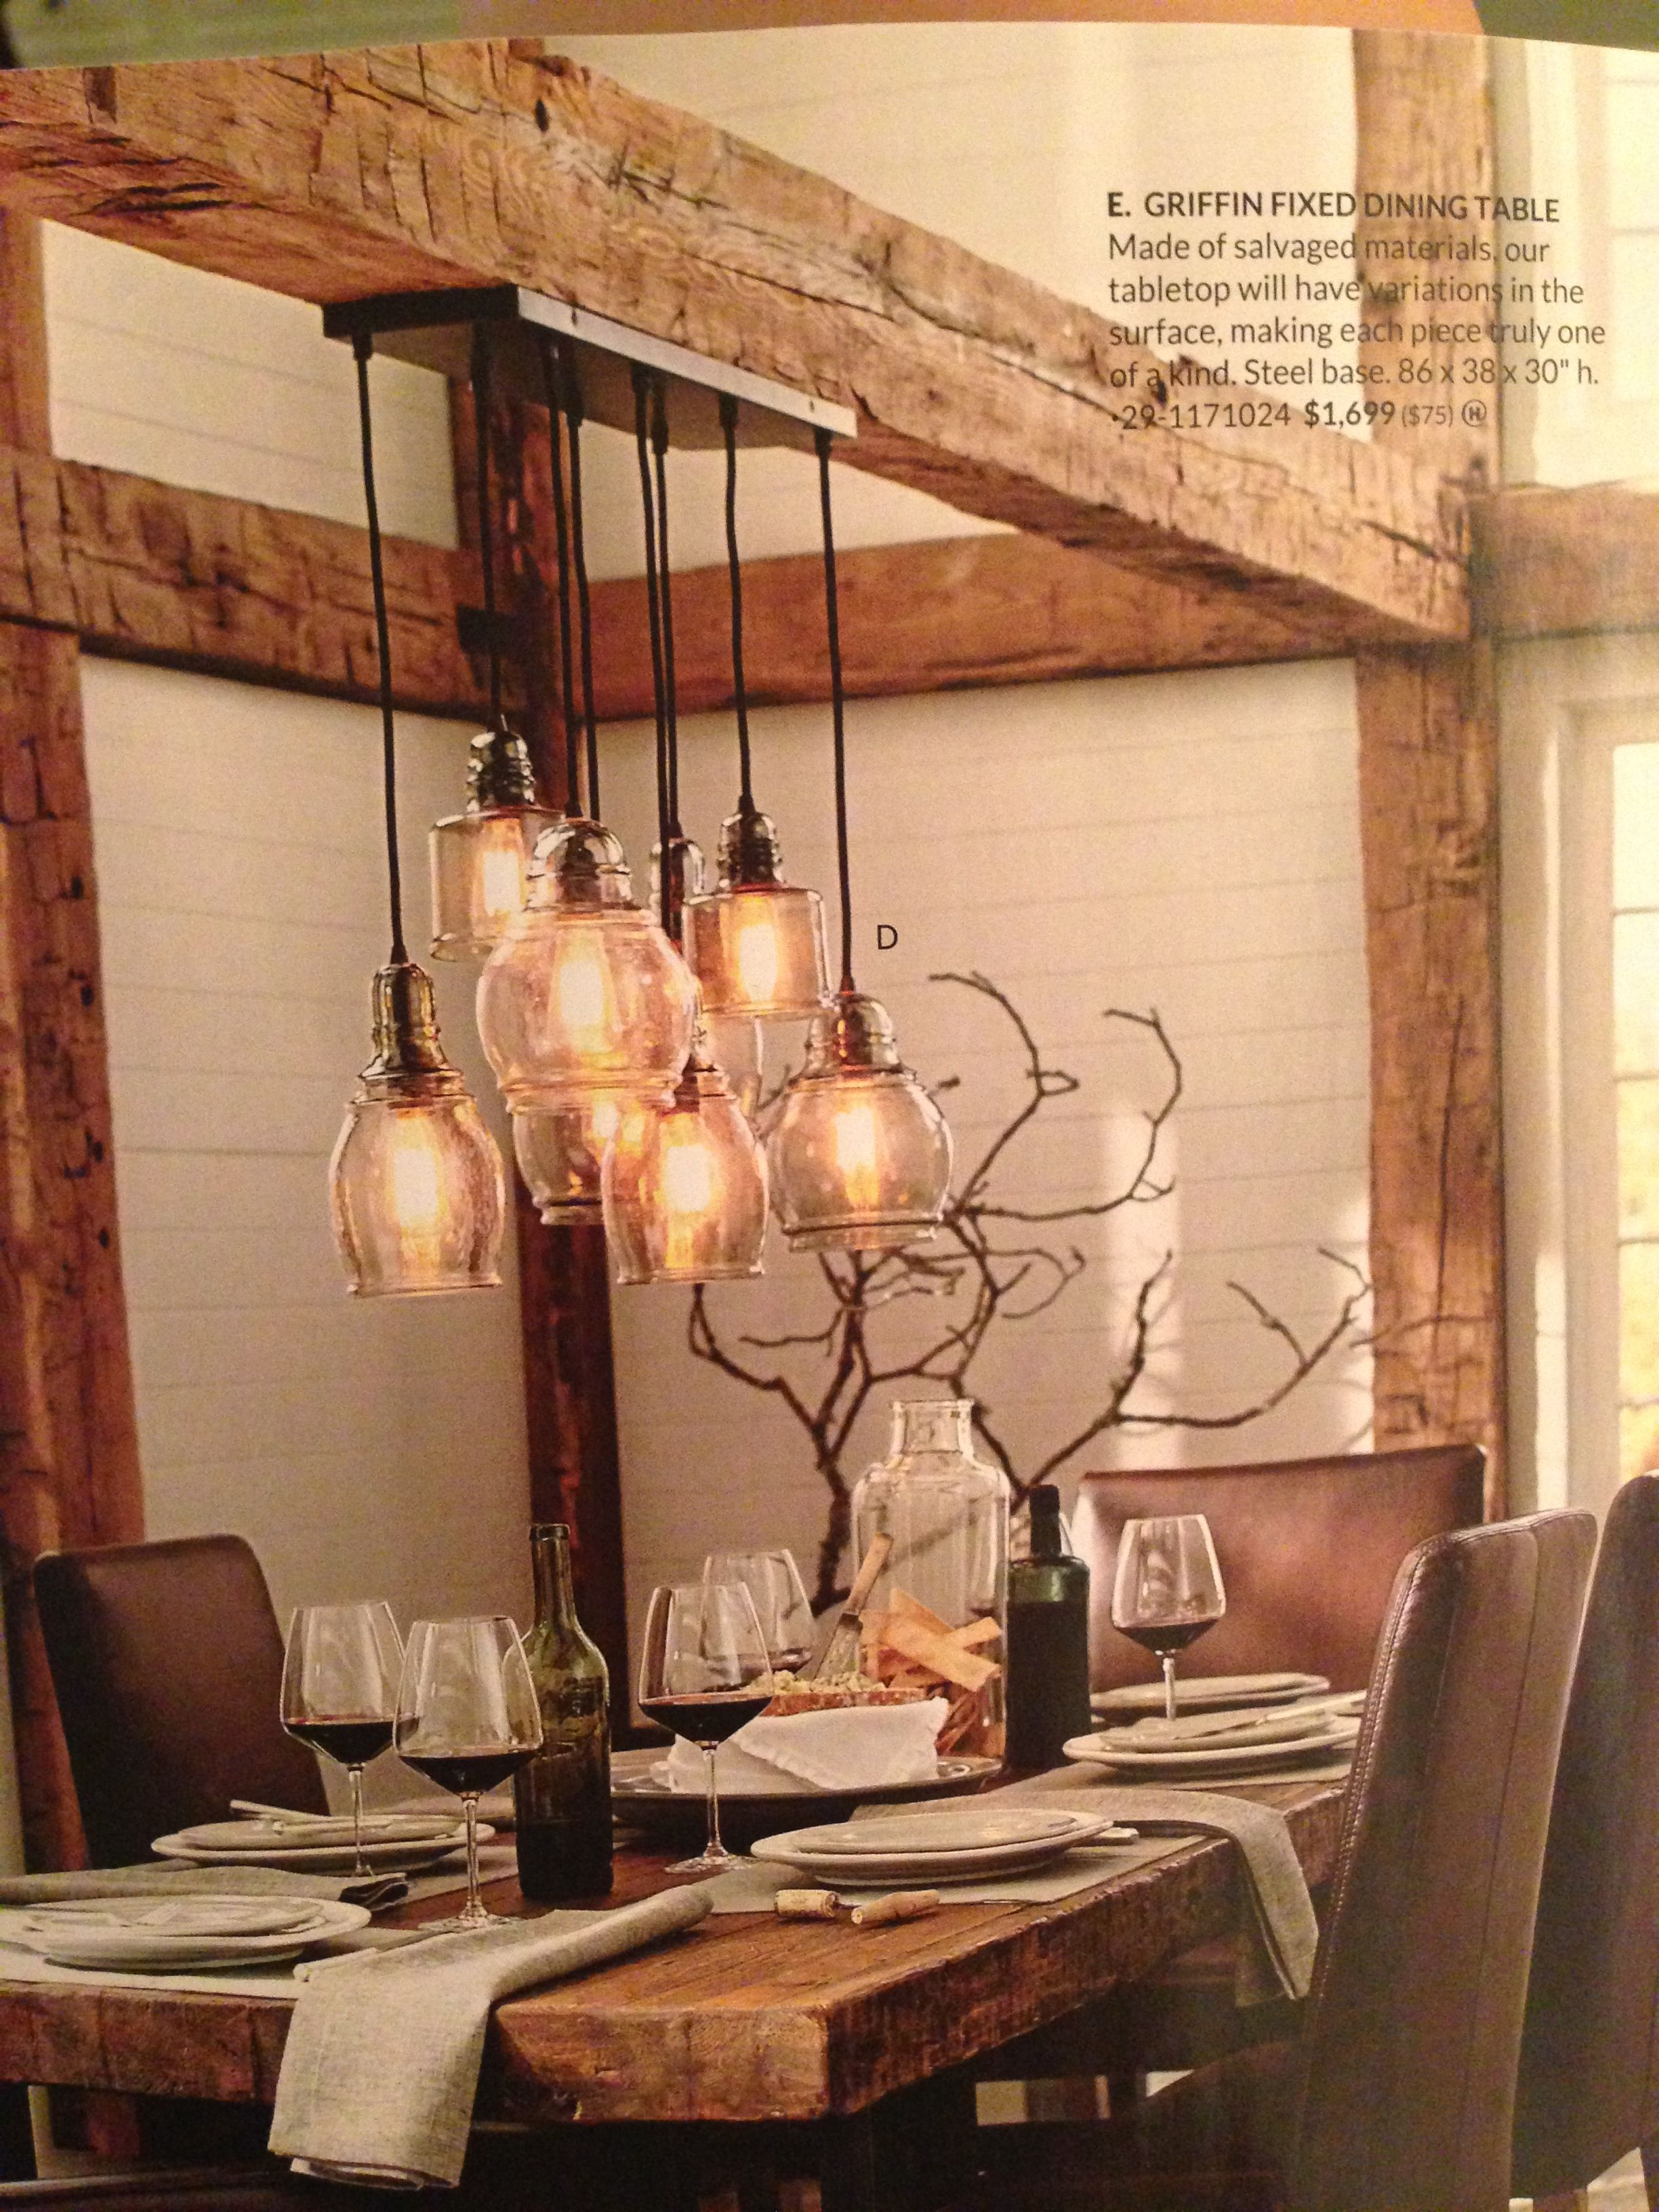 Love the rustic table and beamwork. Kitchen Remodel